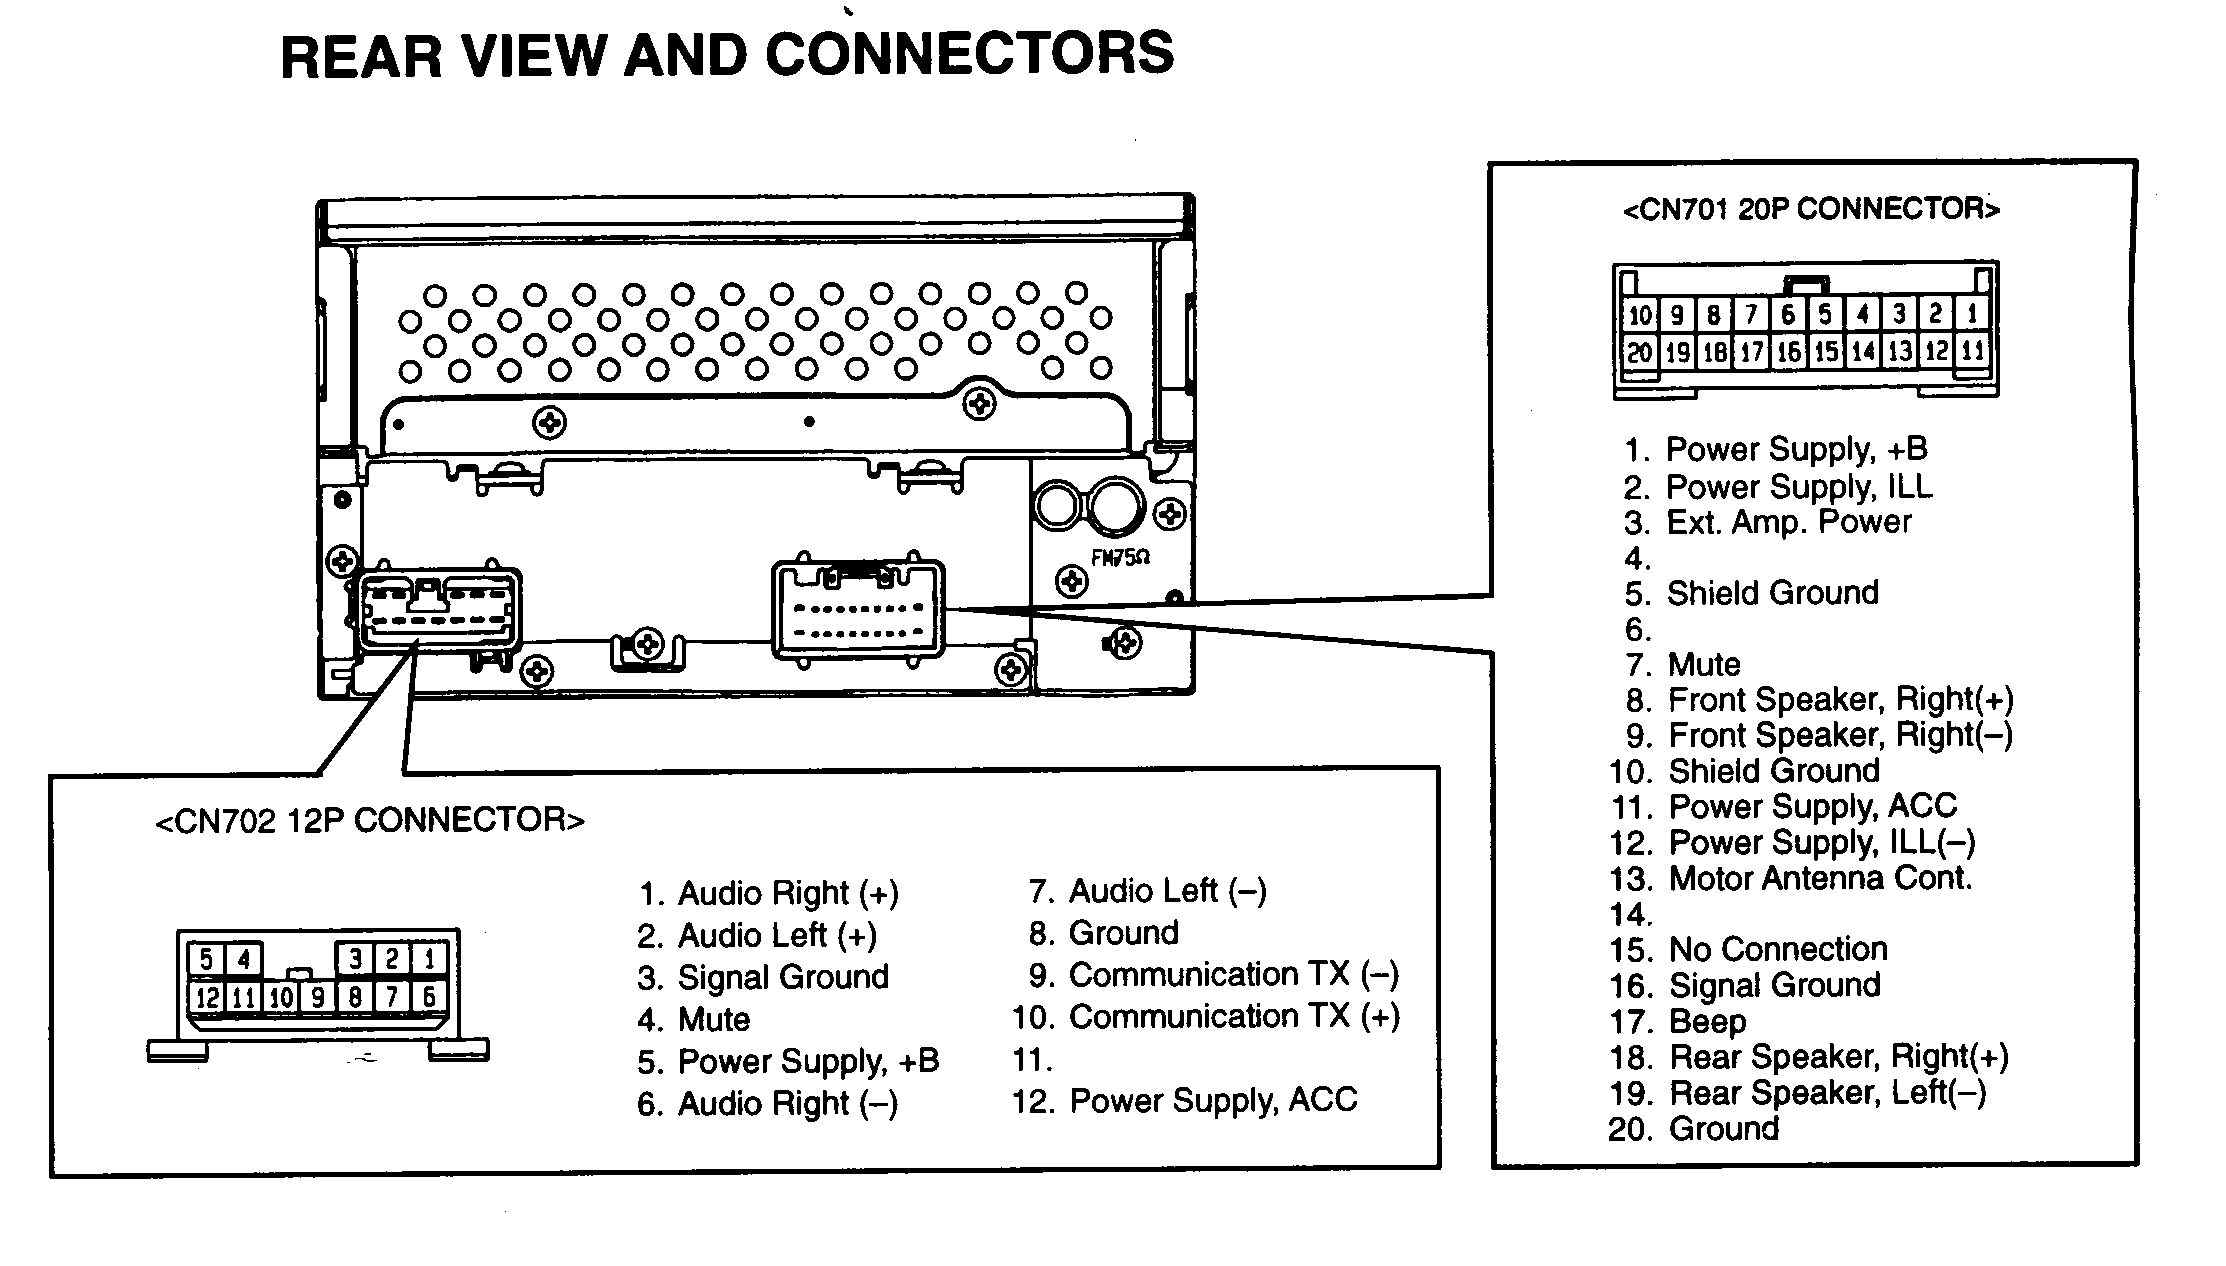 Bose Car Stereo Wiring Diagrams Wiring Schematics Diagram Bose Surround  Sound Wiring Diagram Bose Audio Diagram